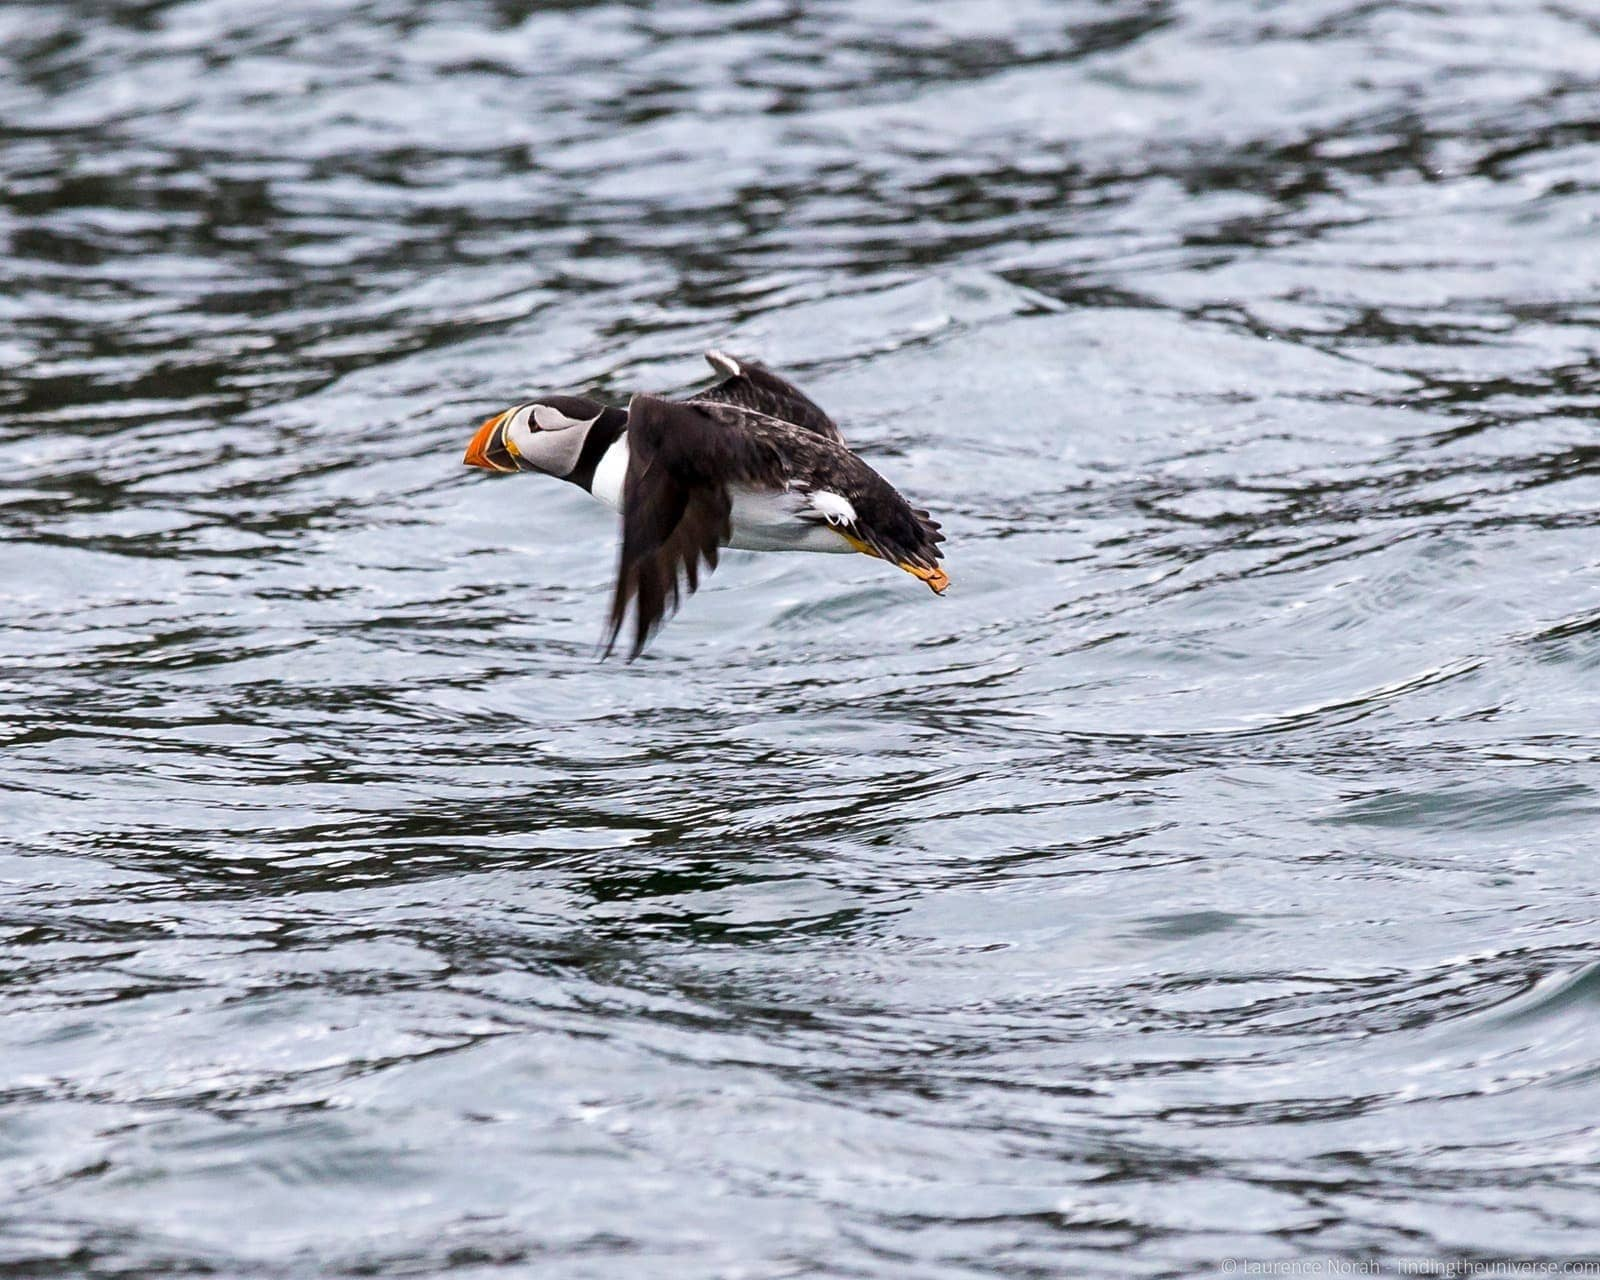 Scottish seabird center boat ride